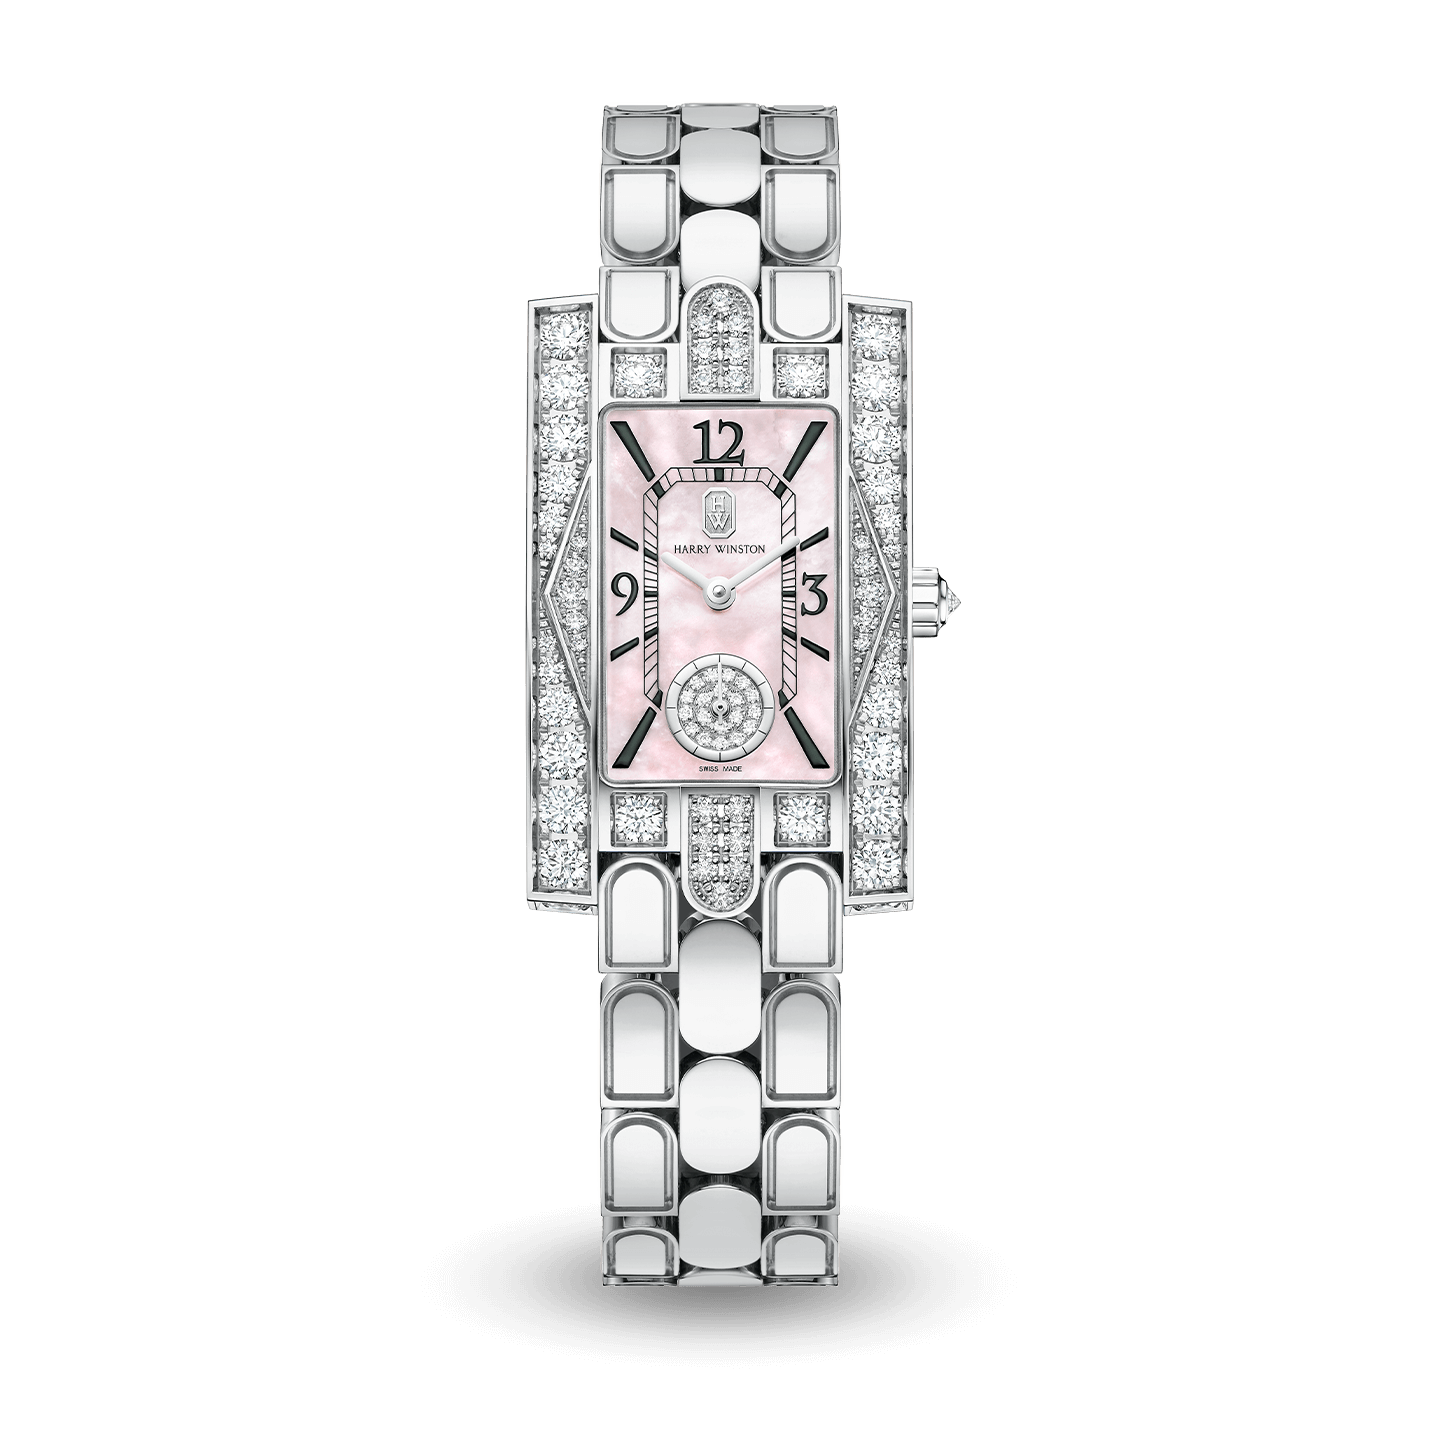 Avenue Classic Pink, product image 1